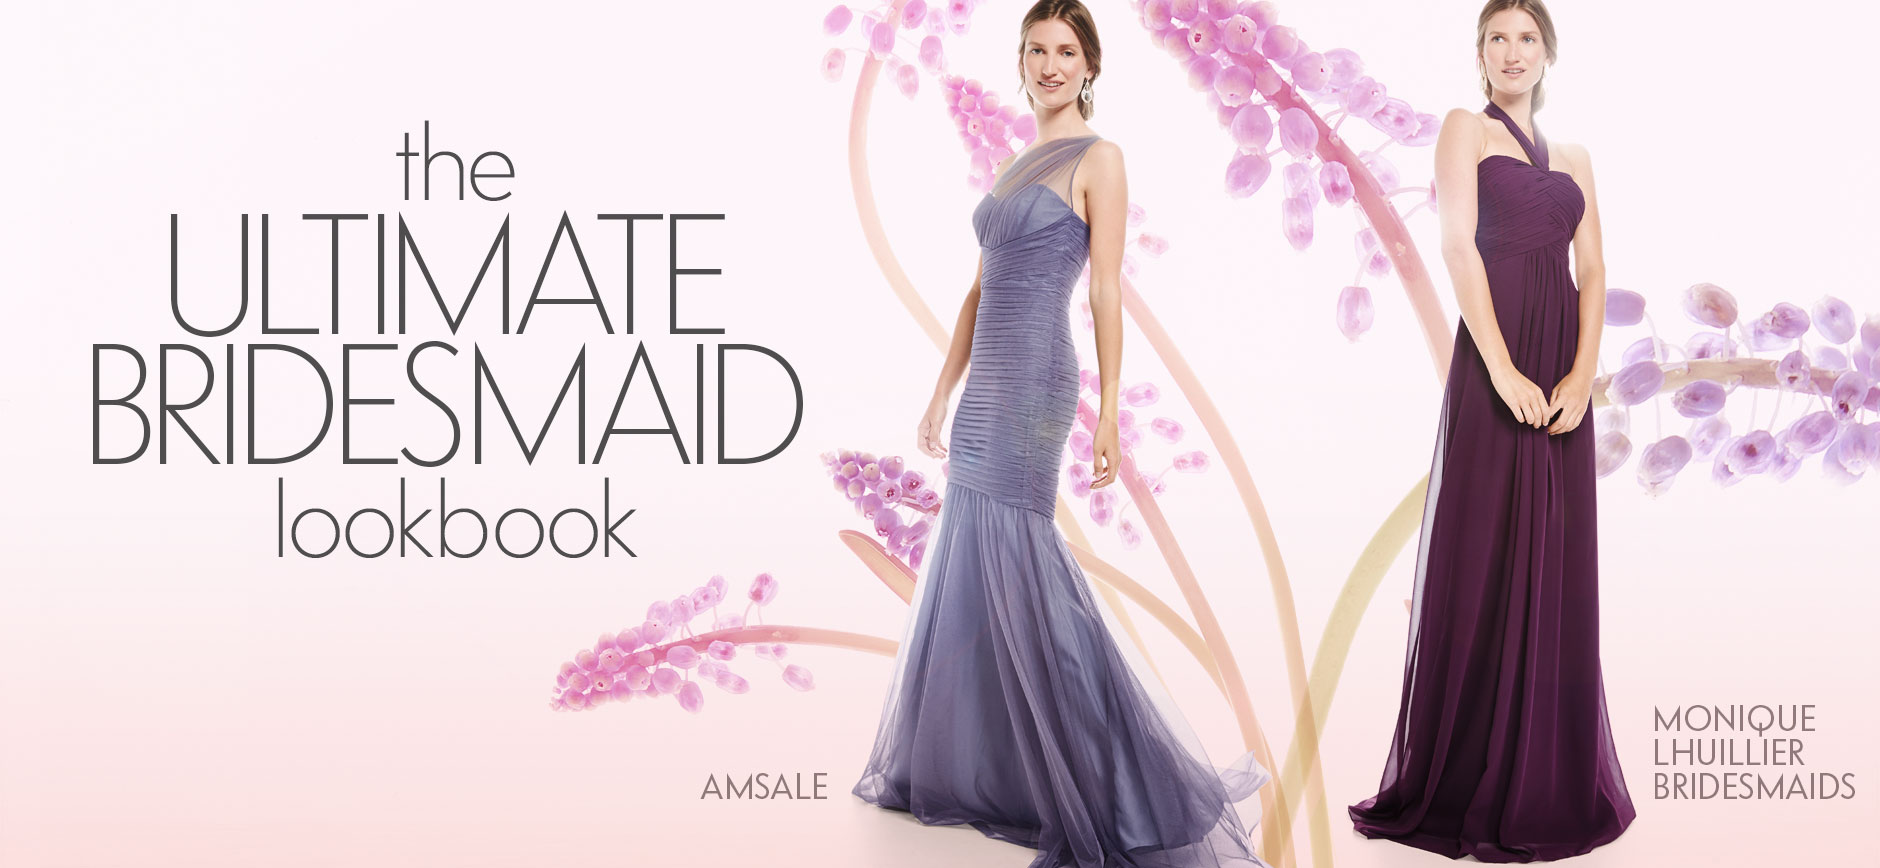 The Ultimate Bridesmaid Lookbook